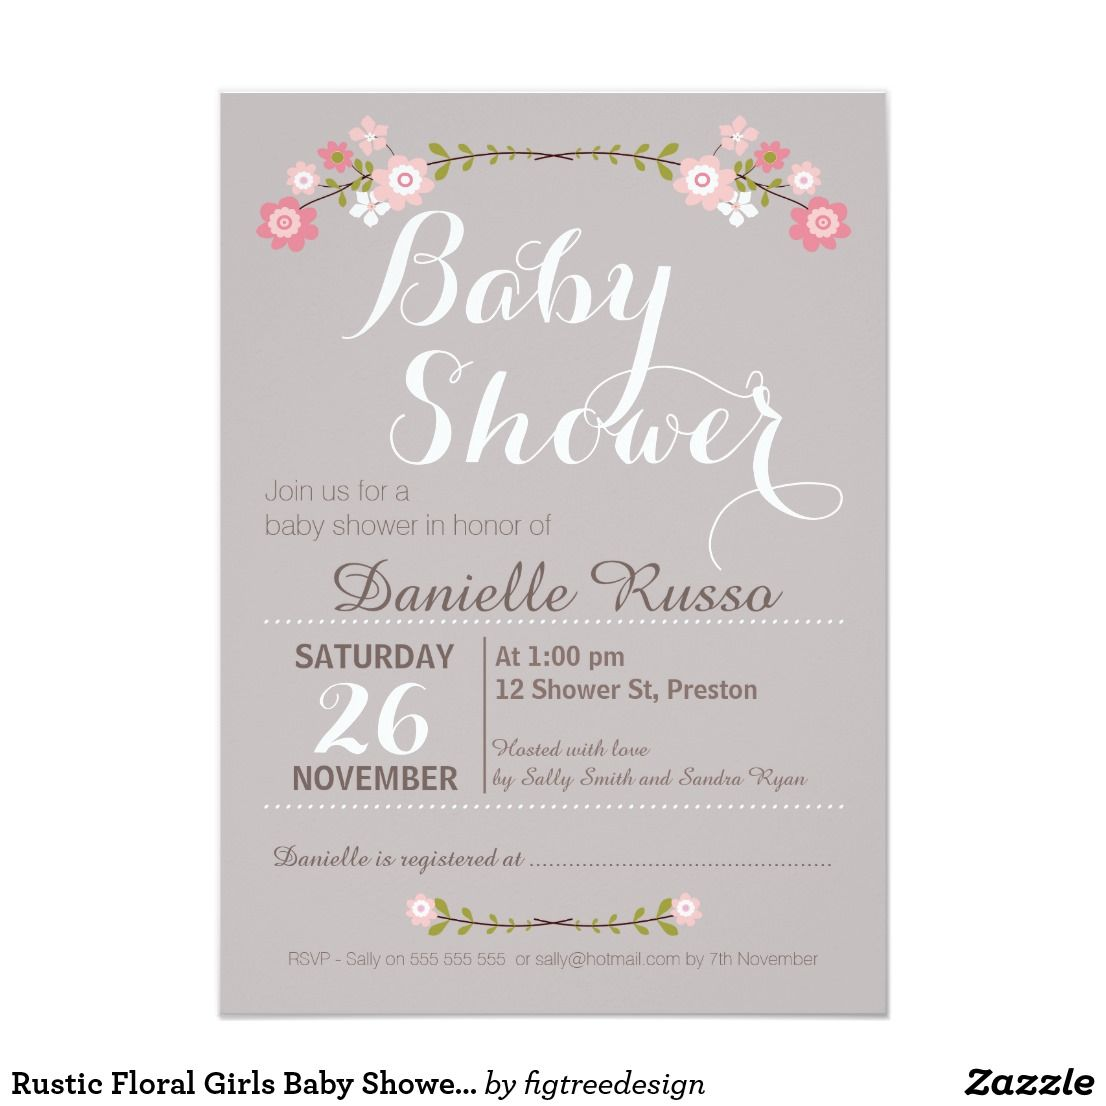 Rustic Floral Girls Baby Shower Invitation Baby Shower Ideas